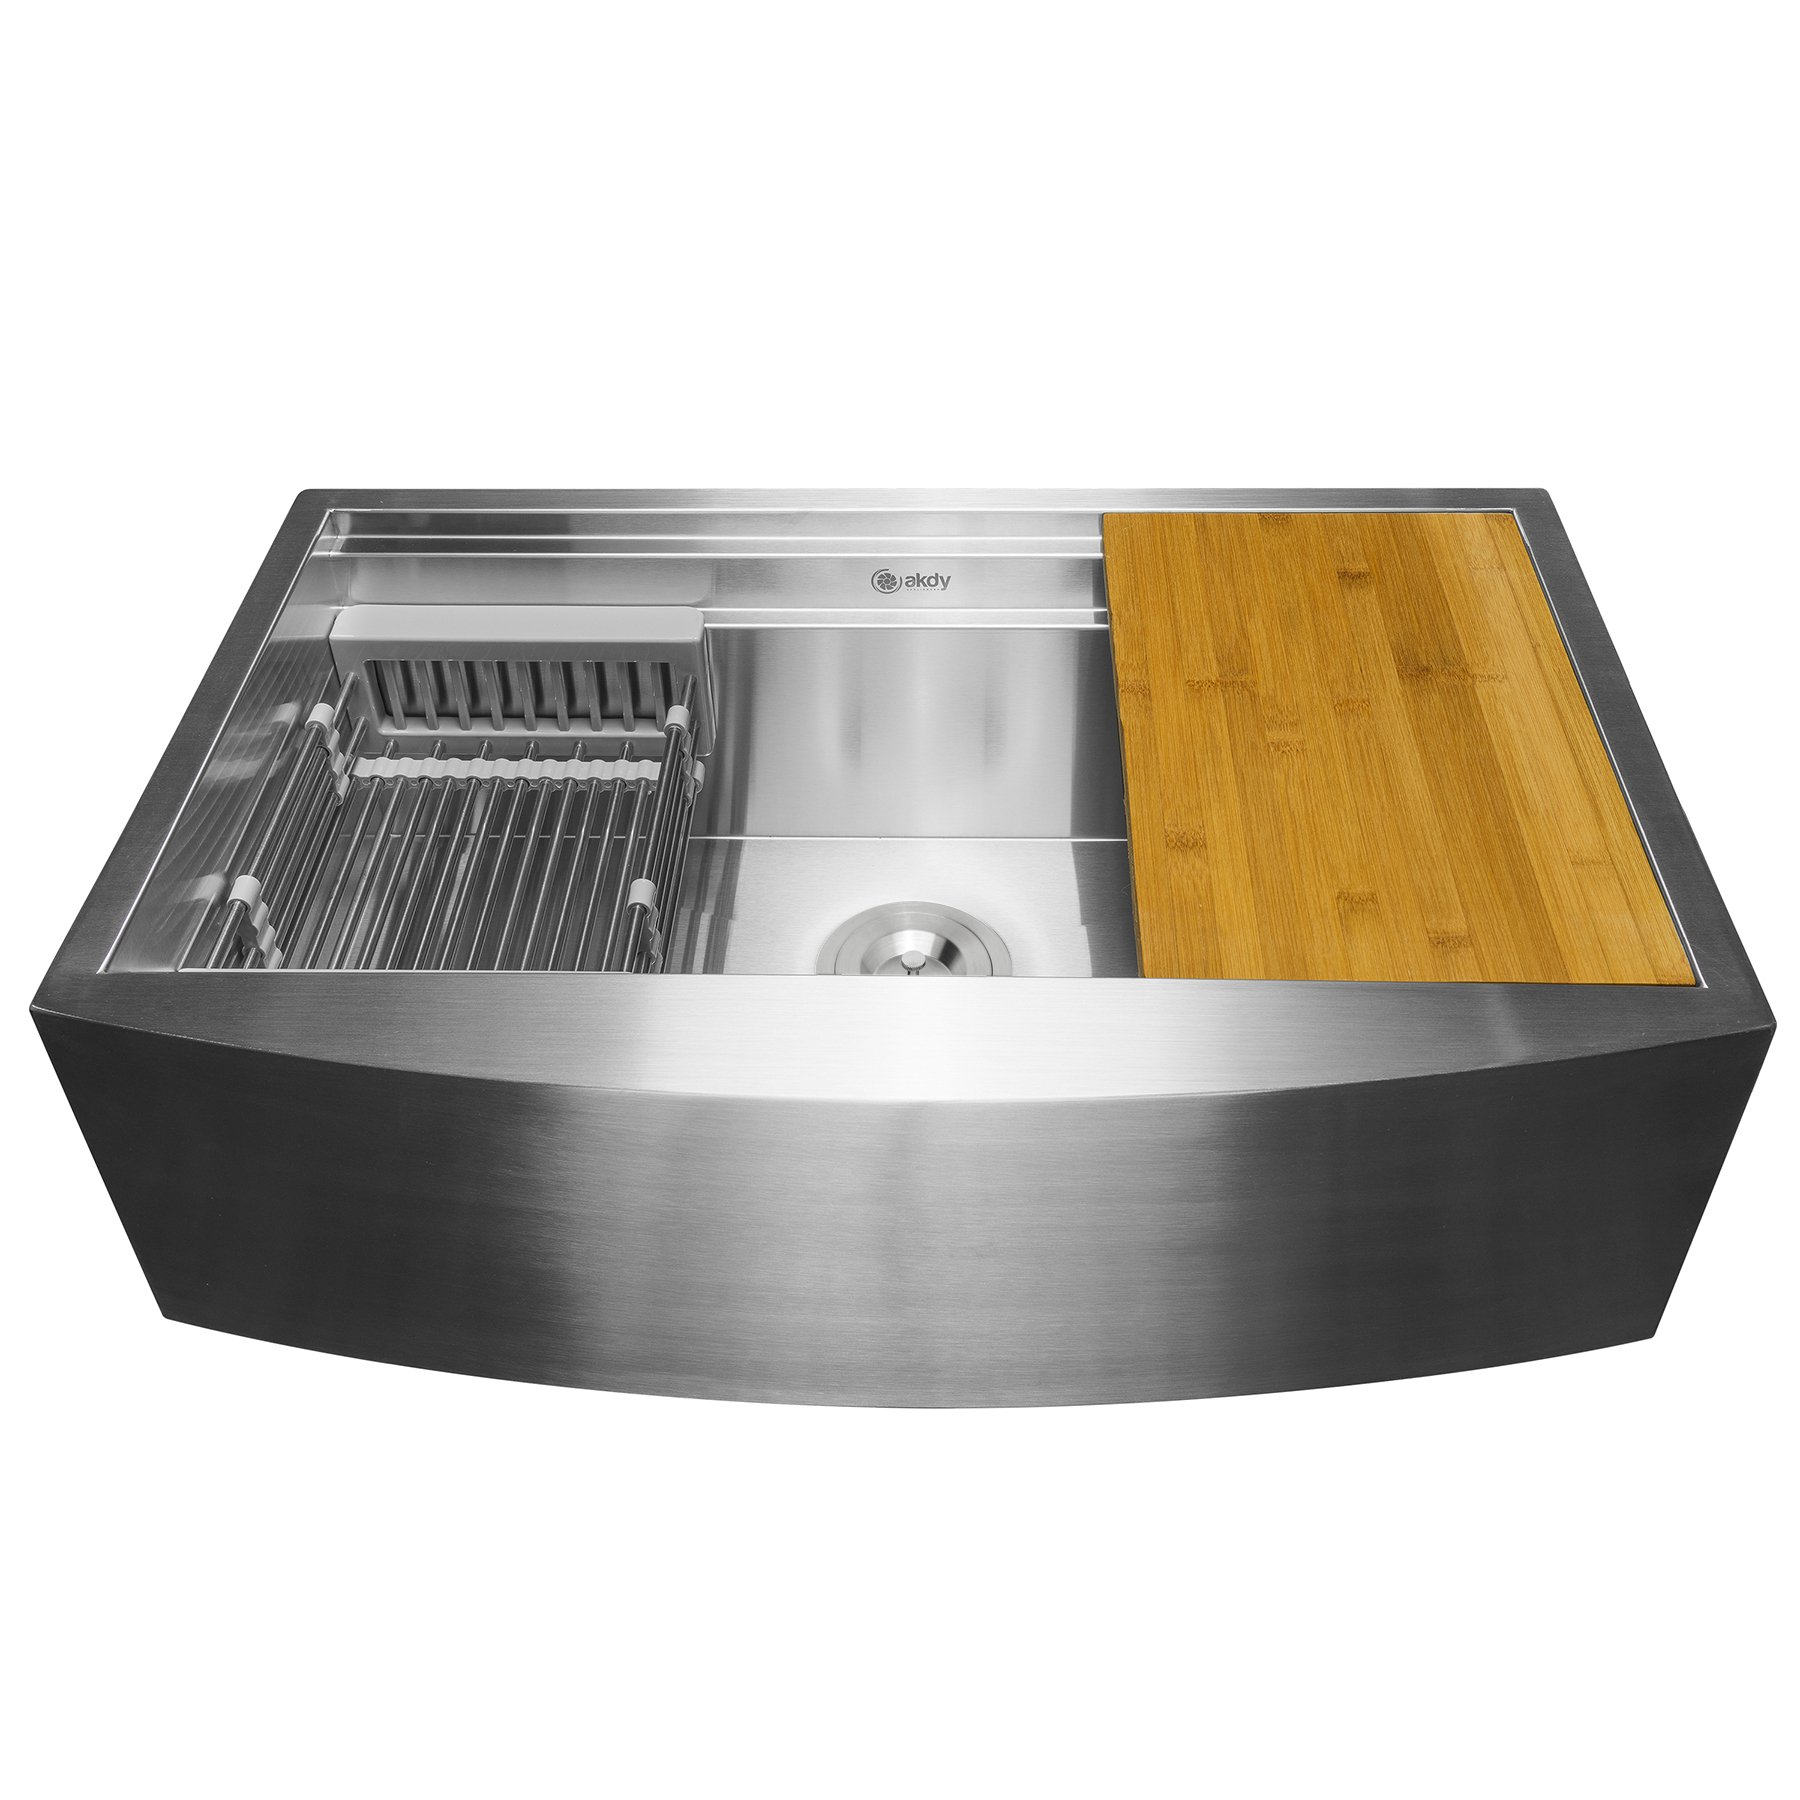 AKDY 33-Inch (33'' x 20'' x 9'') Apron Farmhouse Handmade Stainless Steel Kitchen Sink - Single Bowl Space Saving Kitchen Sink - Kitchen Sink with Drain Strainer Kit Adjustable Tray and Cutting Board